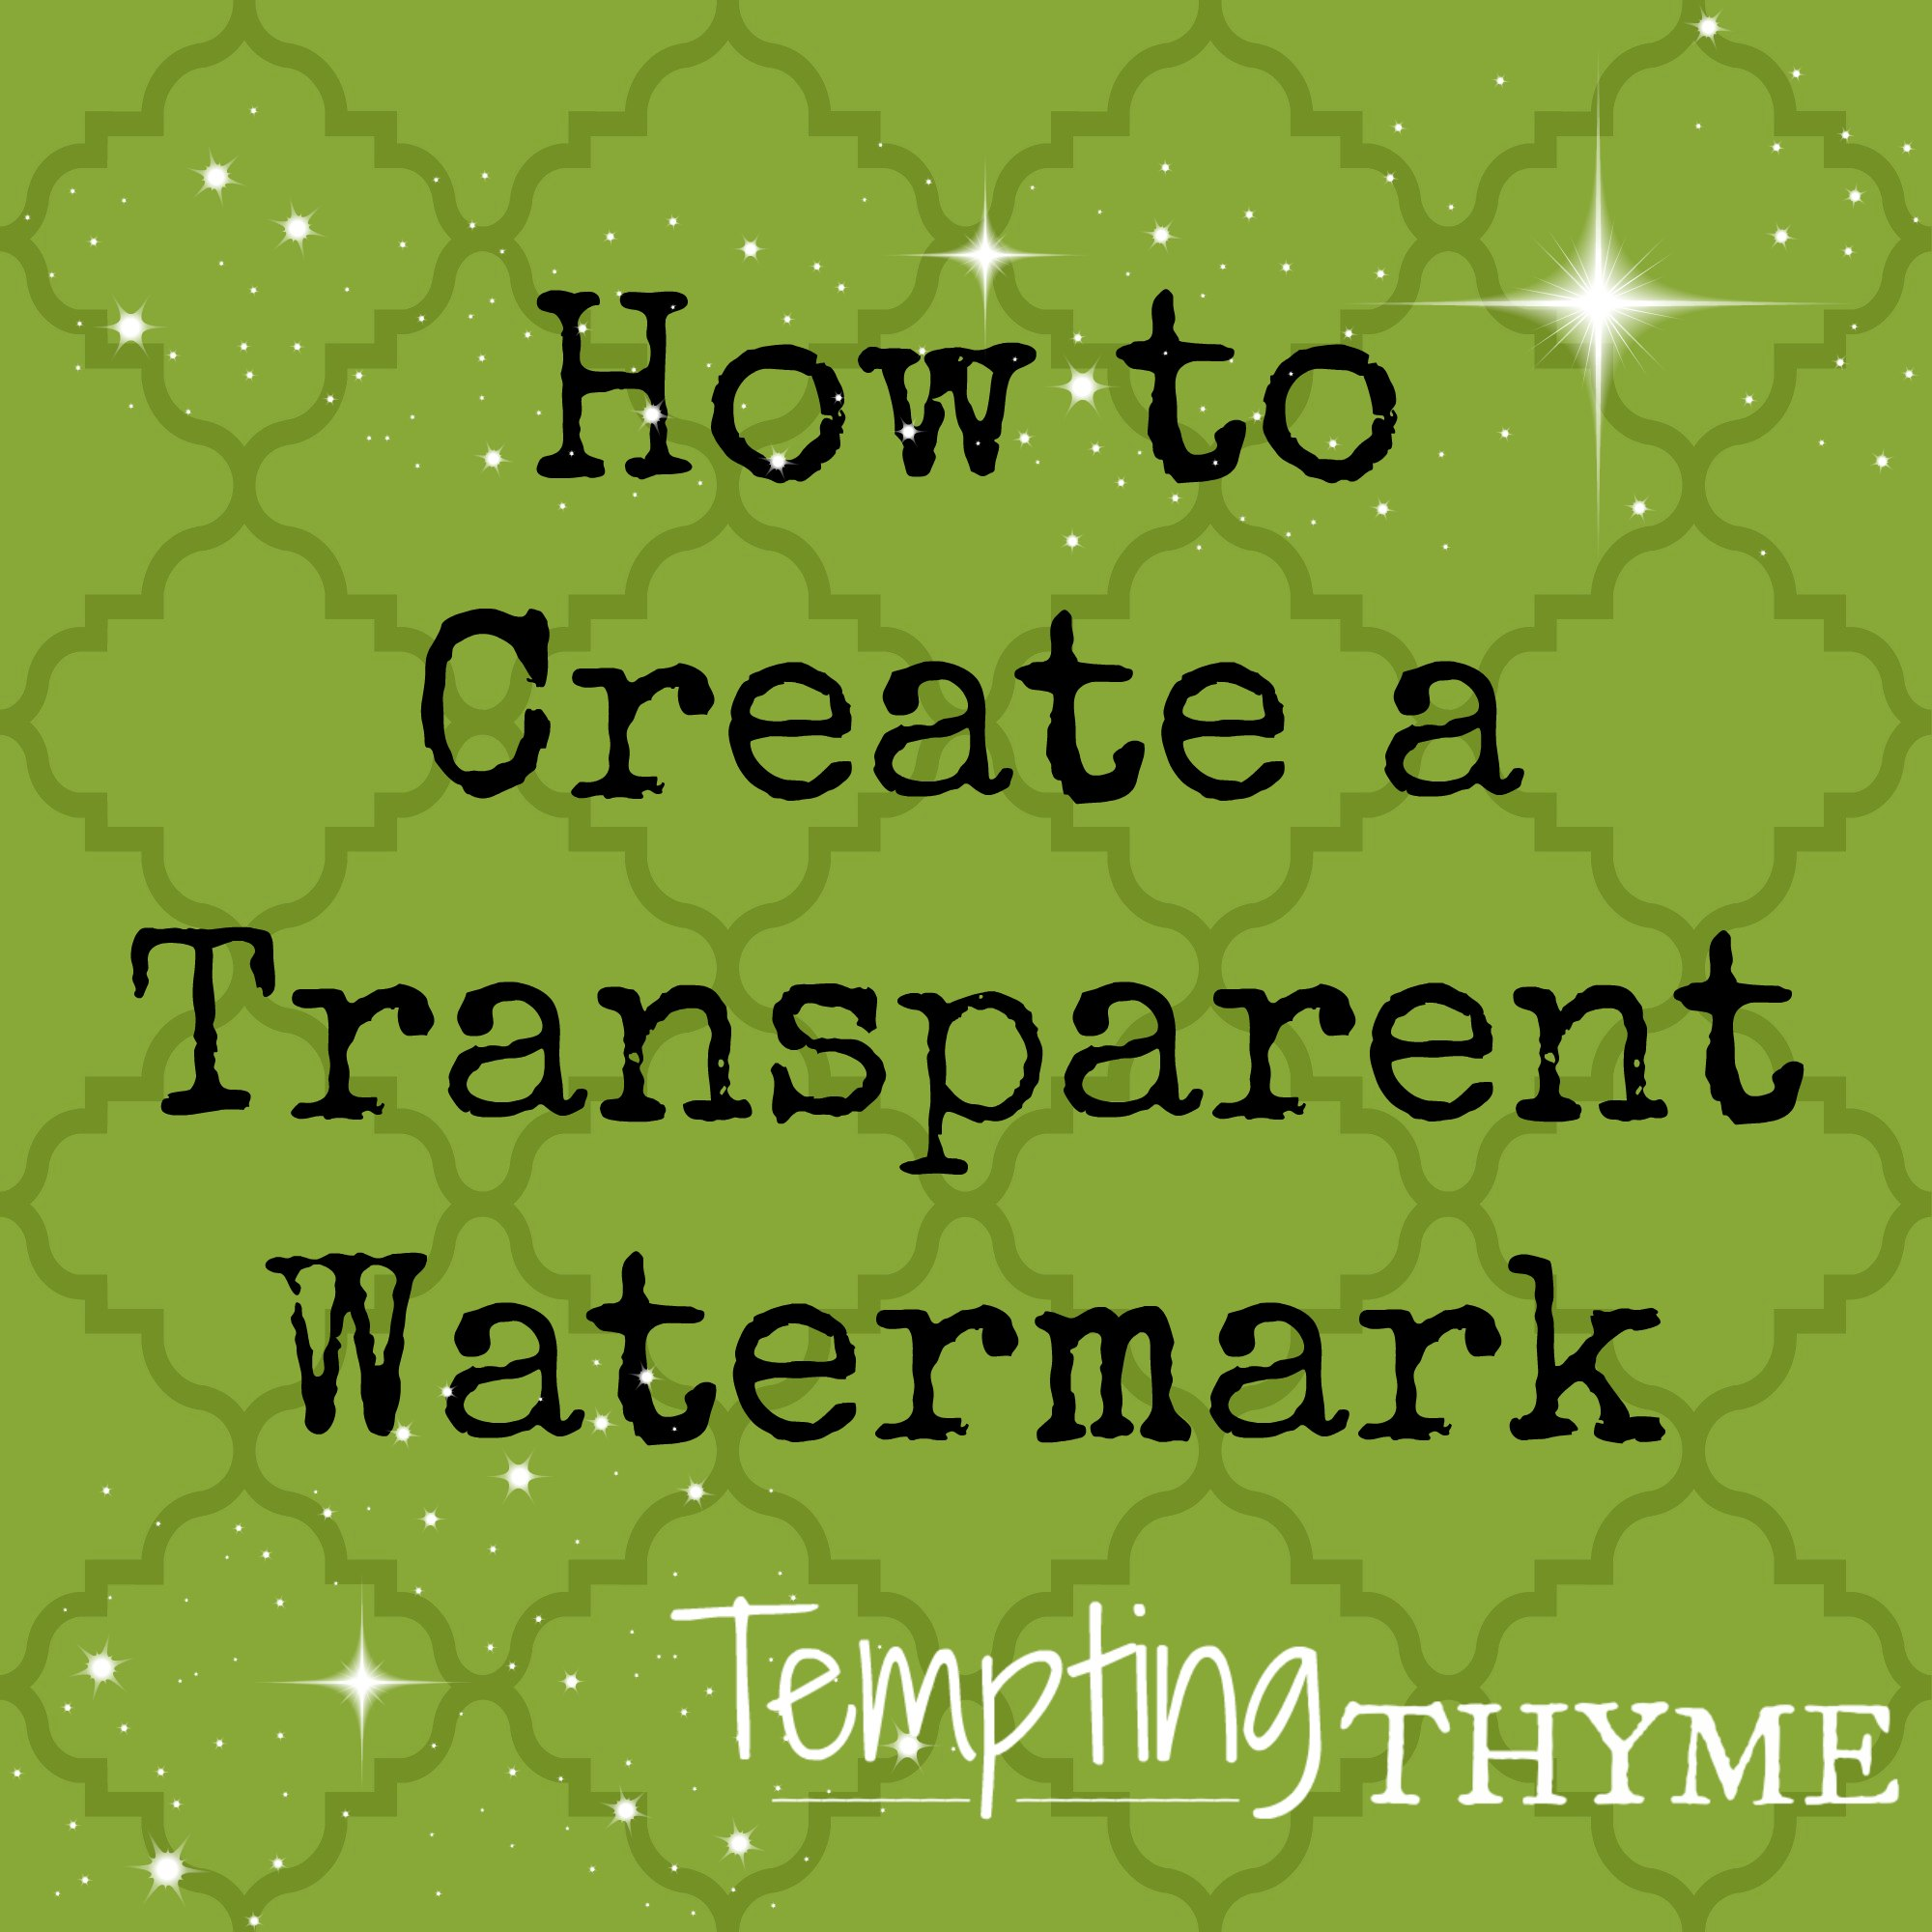 Tempting Thyme DIY Blog Design